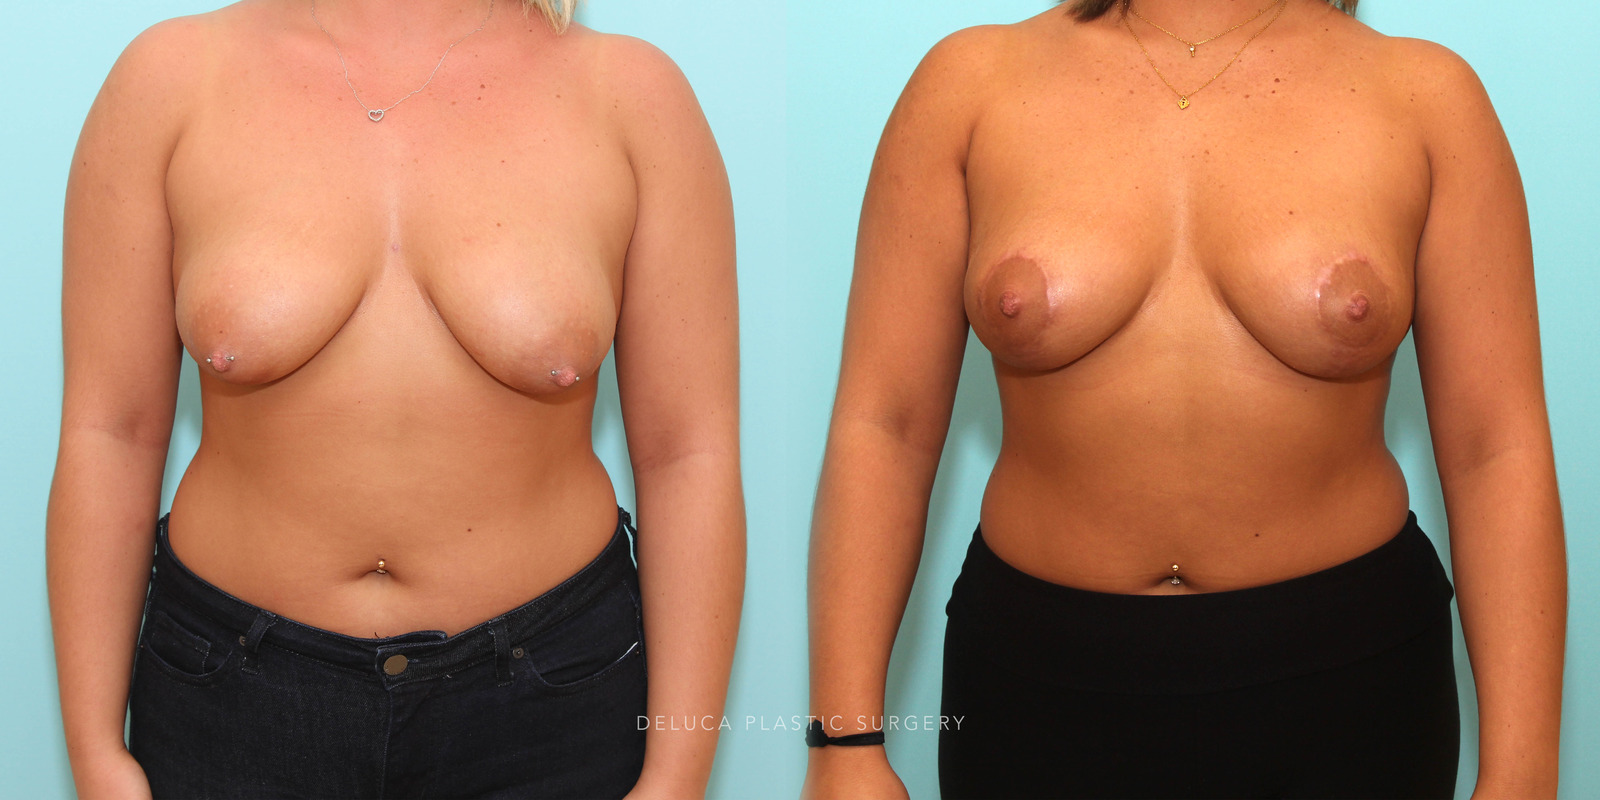 20 Year Old Circumvertical (Lollipop) Breast Lift